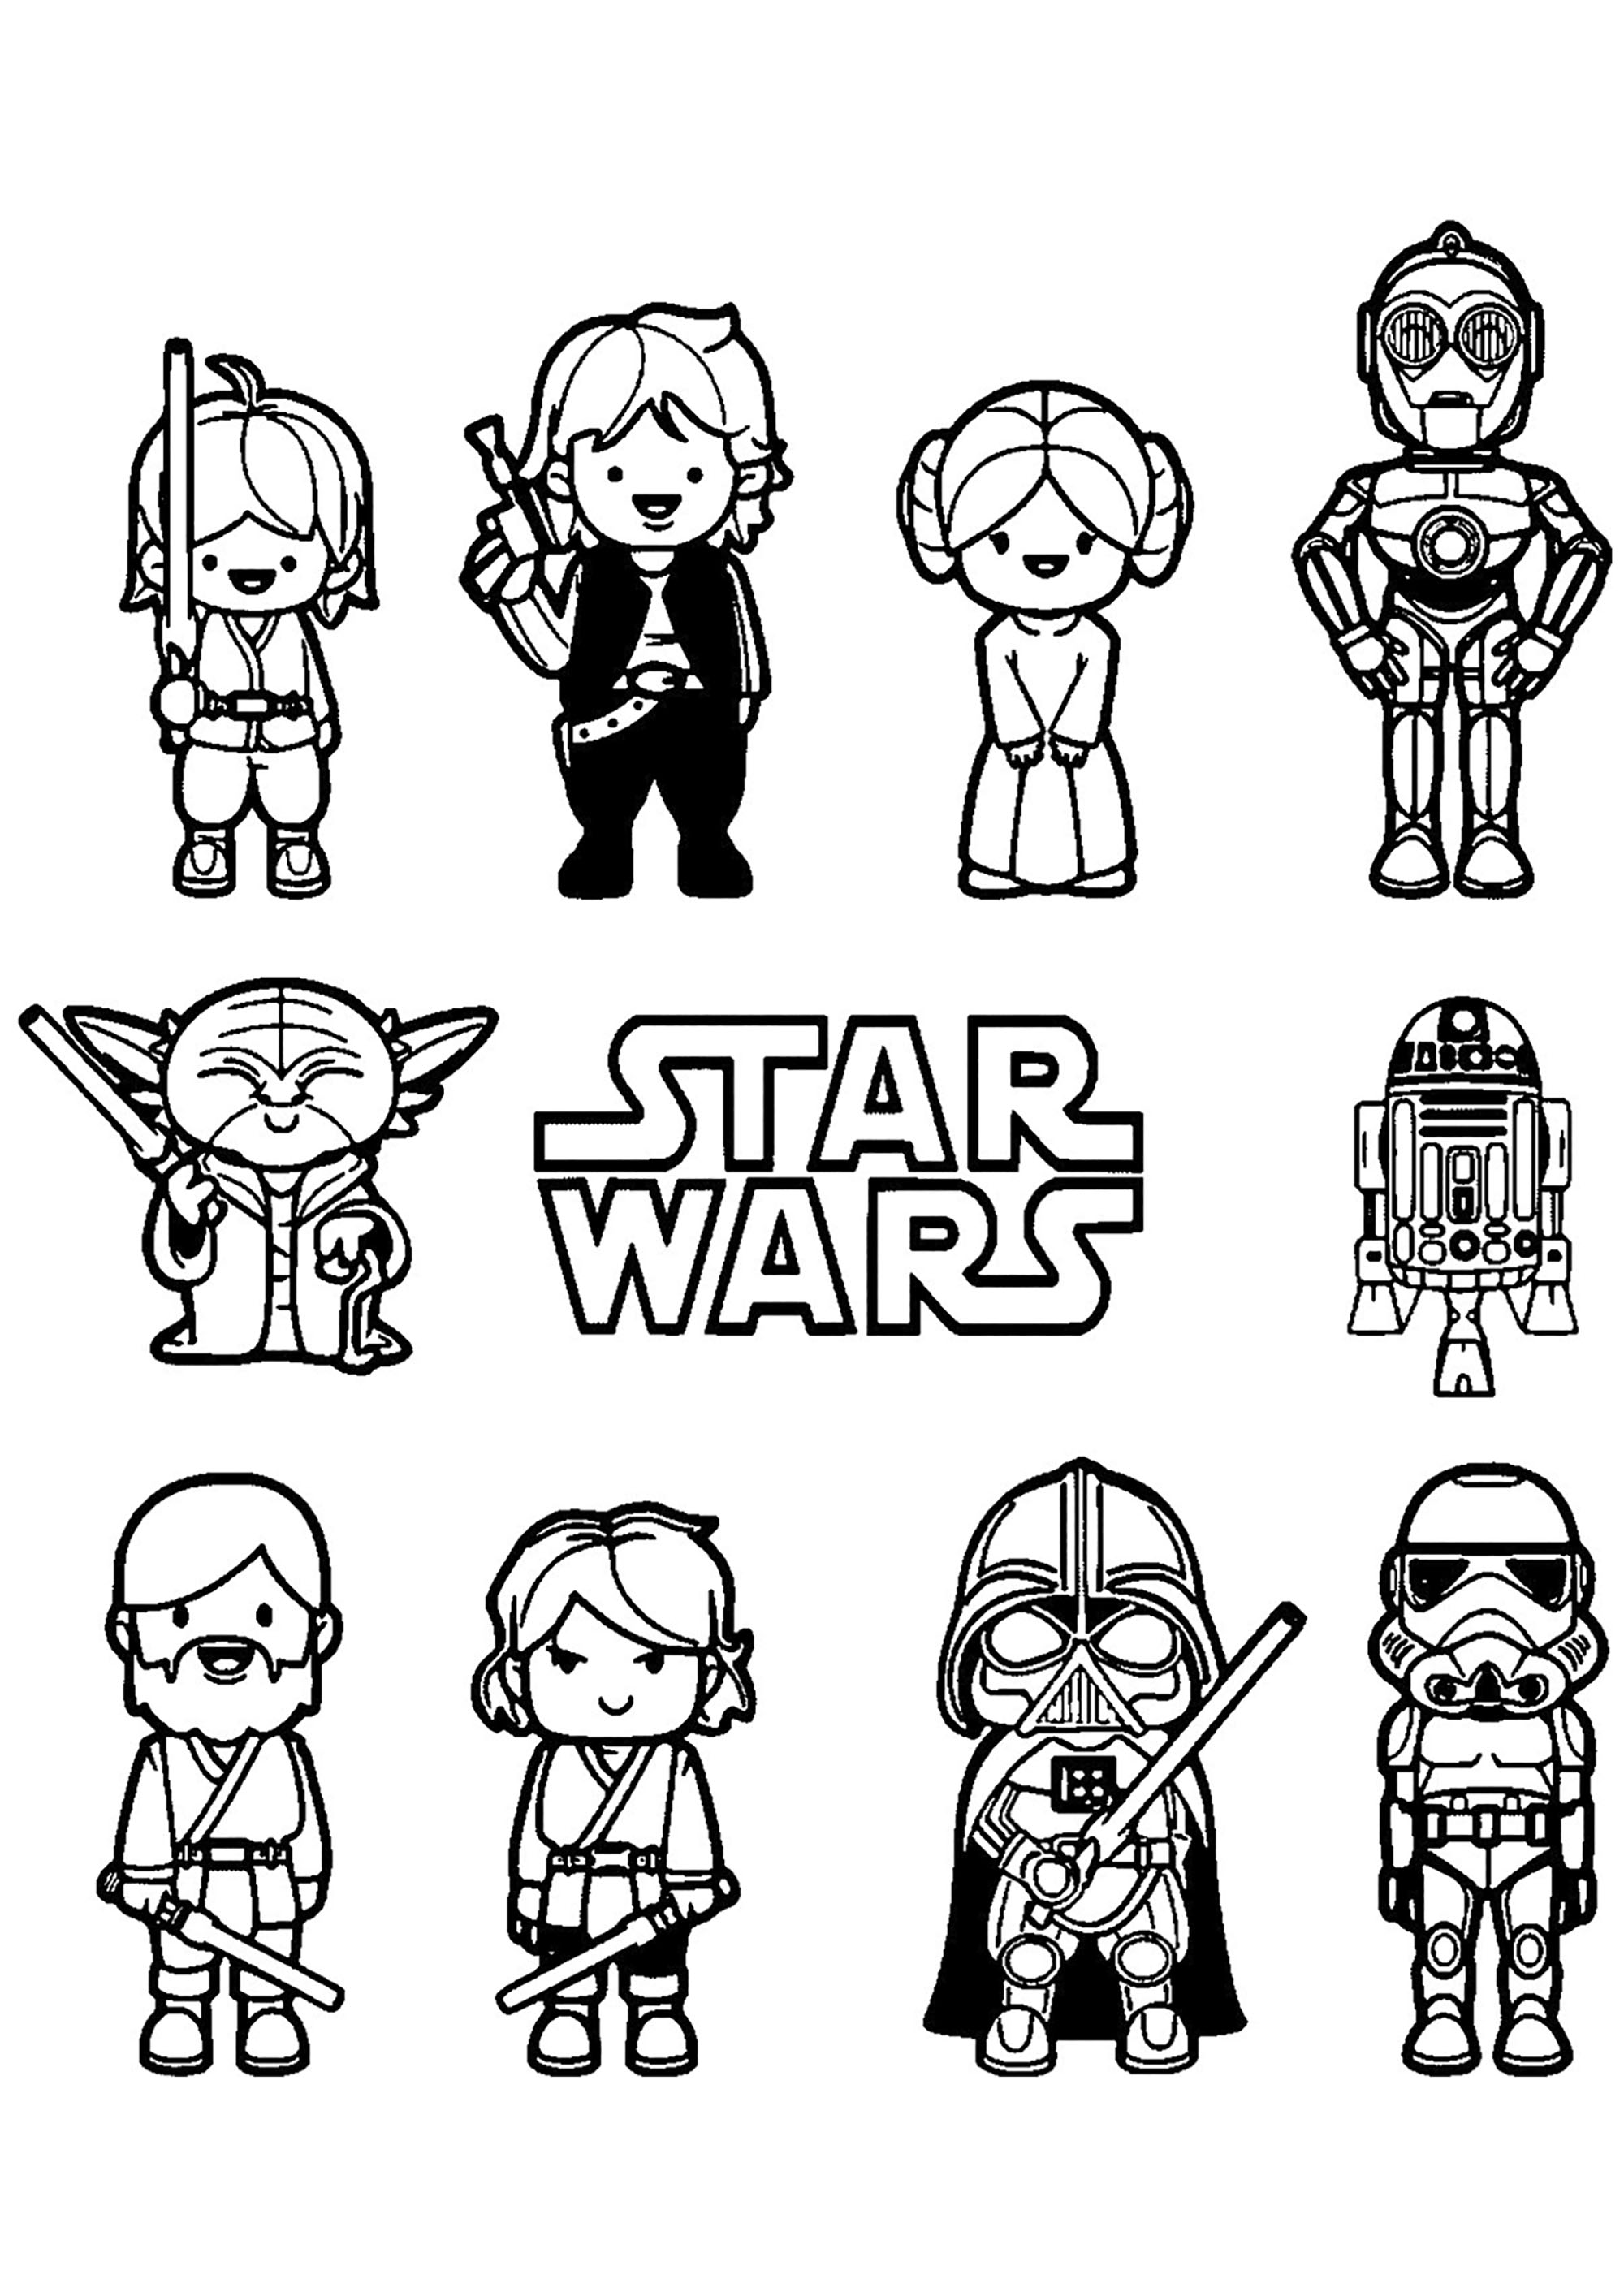 free coloring pages and star wars | Star wars free to color for kids - Star Wars Kids Coloring ...